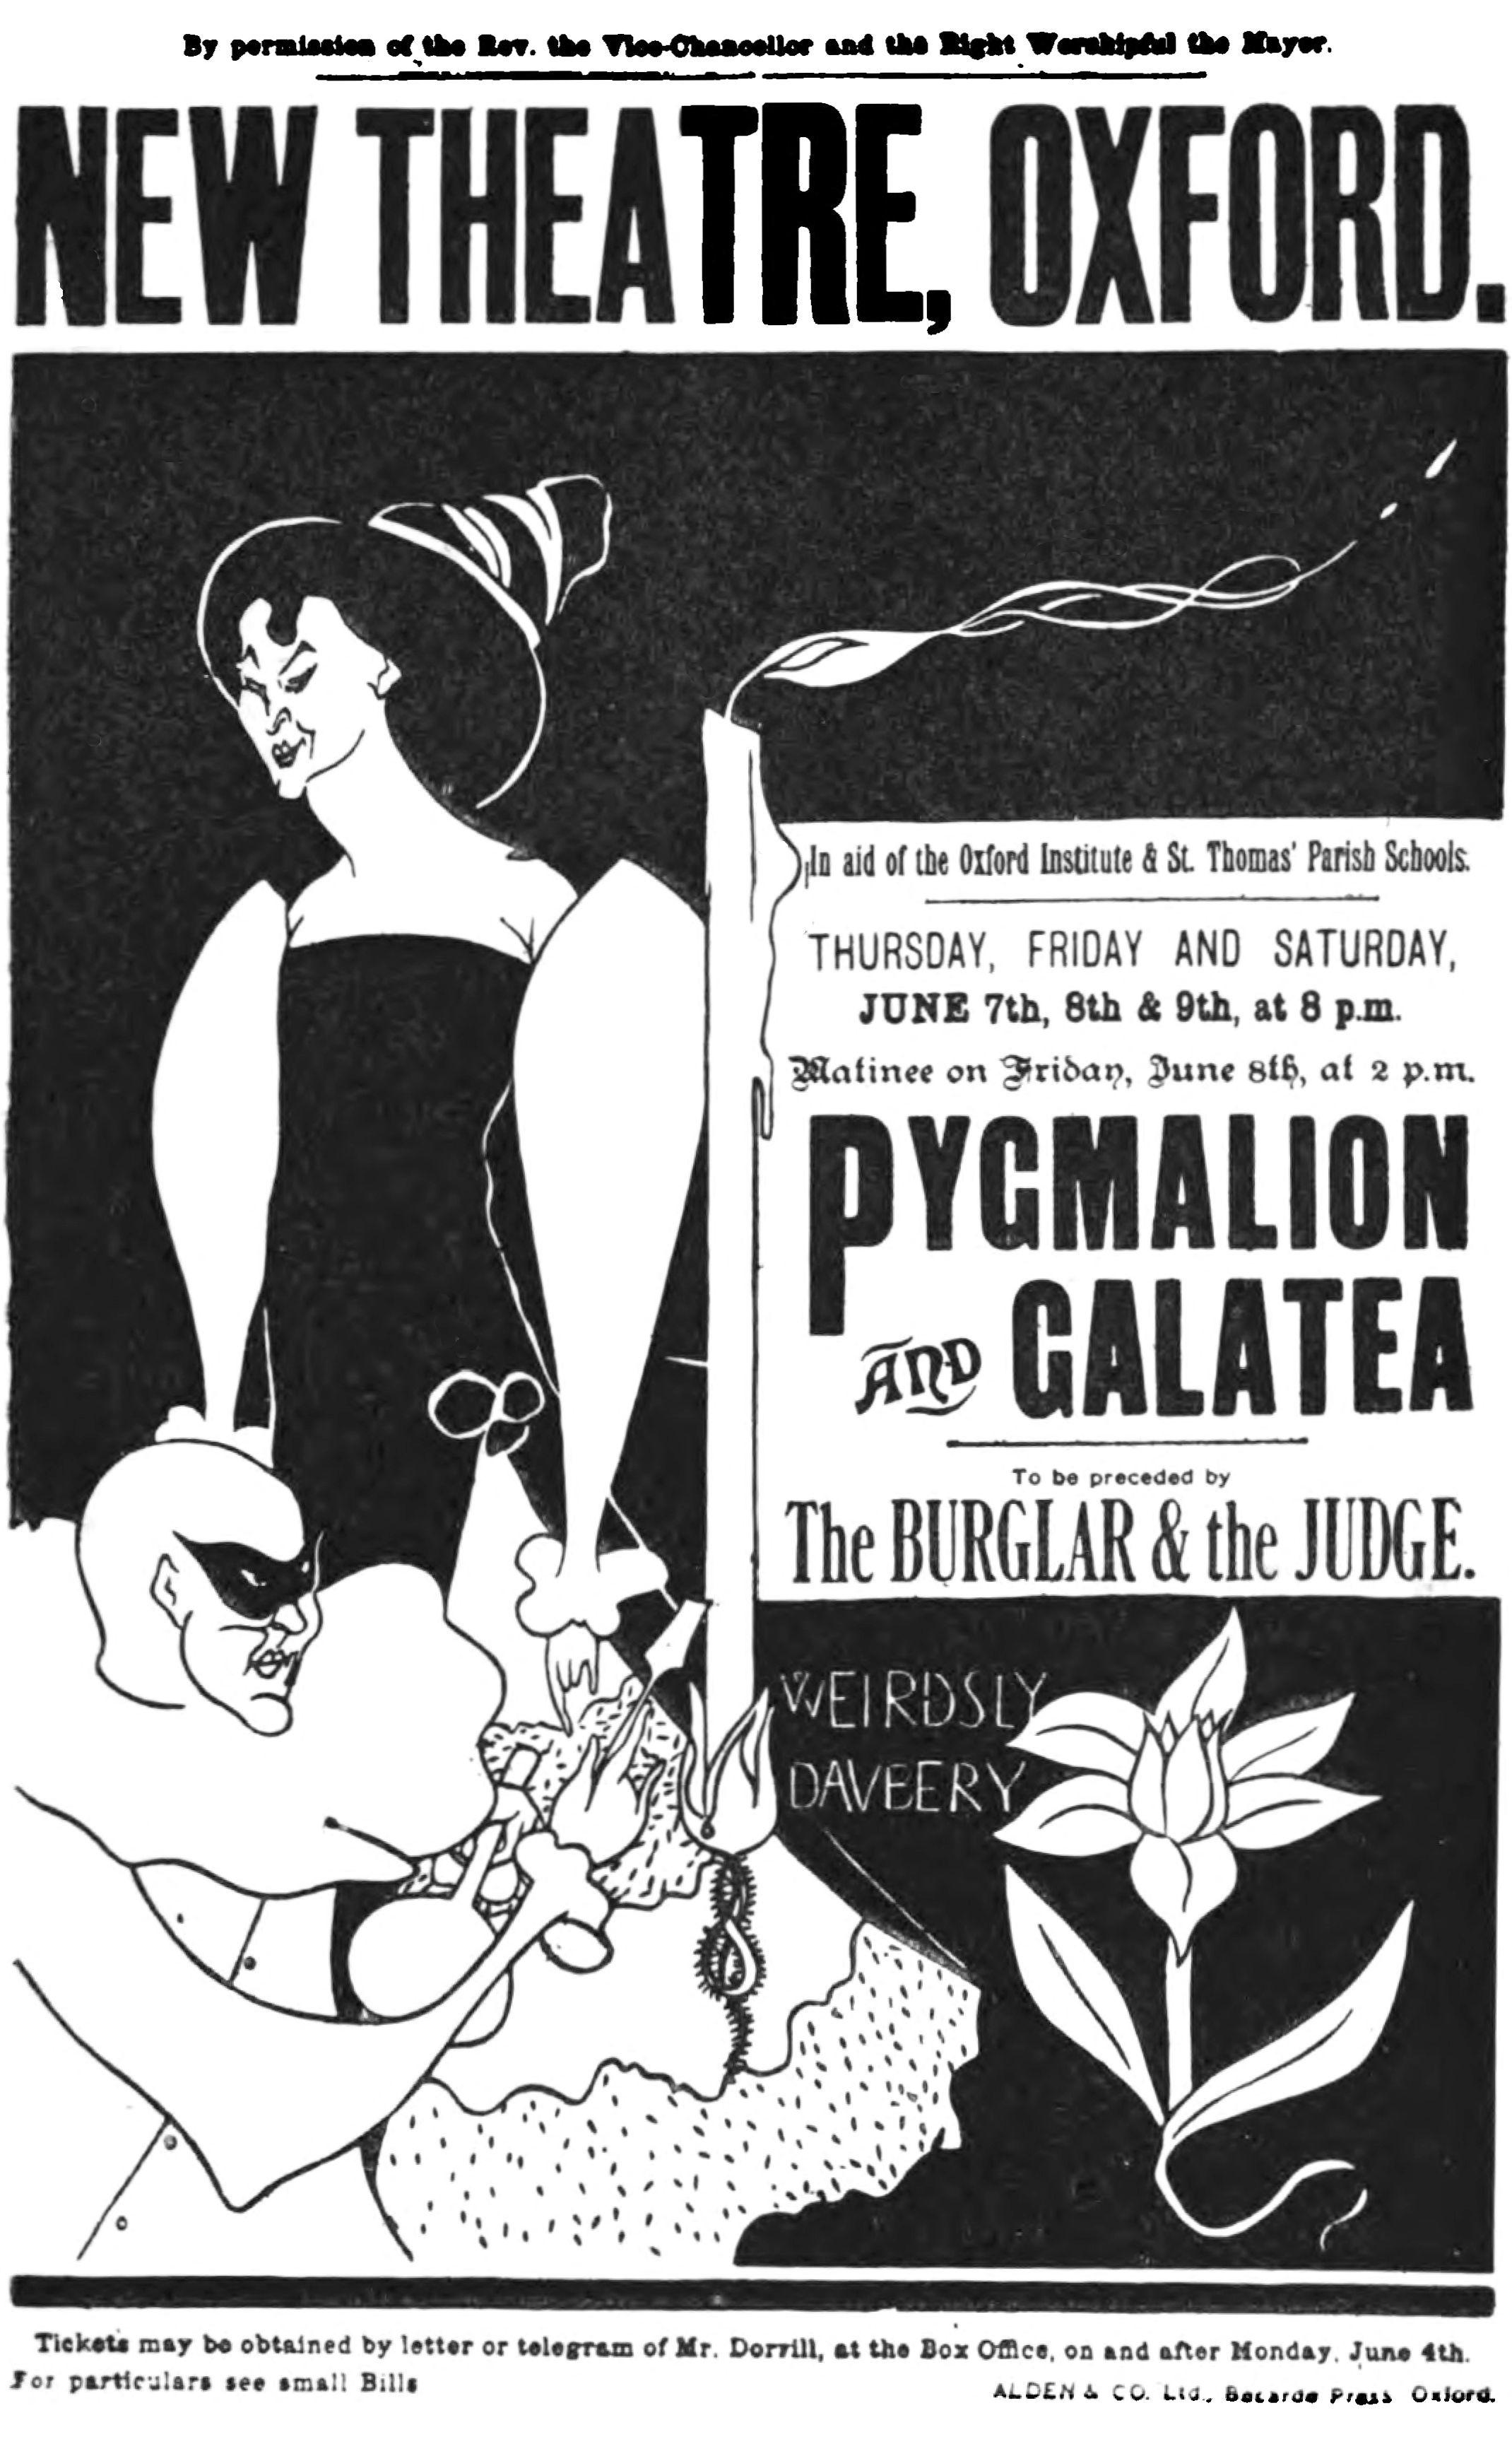 file pp d poster by j hearn weirdsly daubery for pyg on and file pp d245 poster by j hearn weirdsly daubery for pyg on and galatea